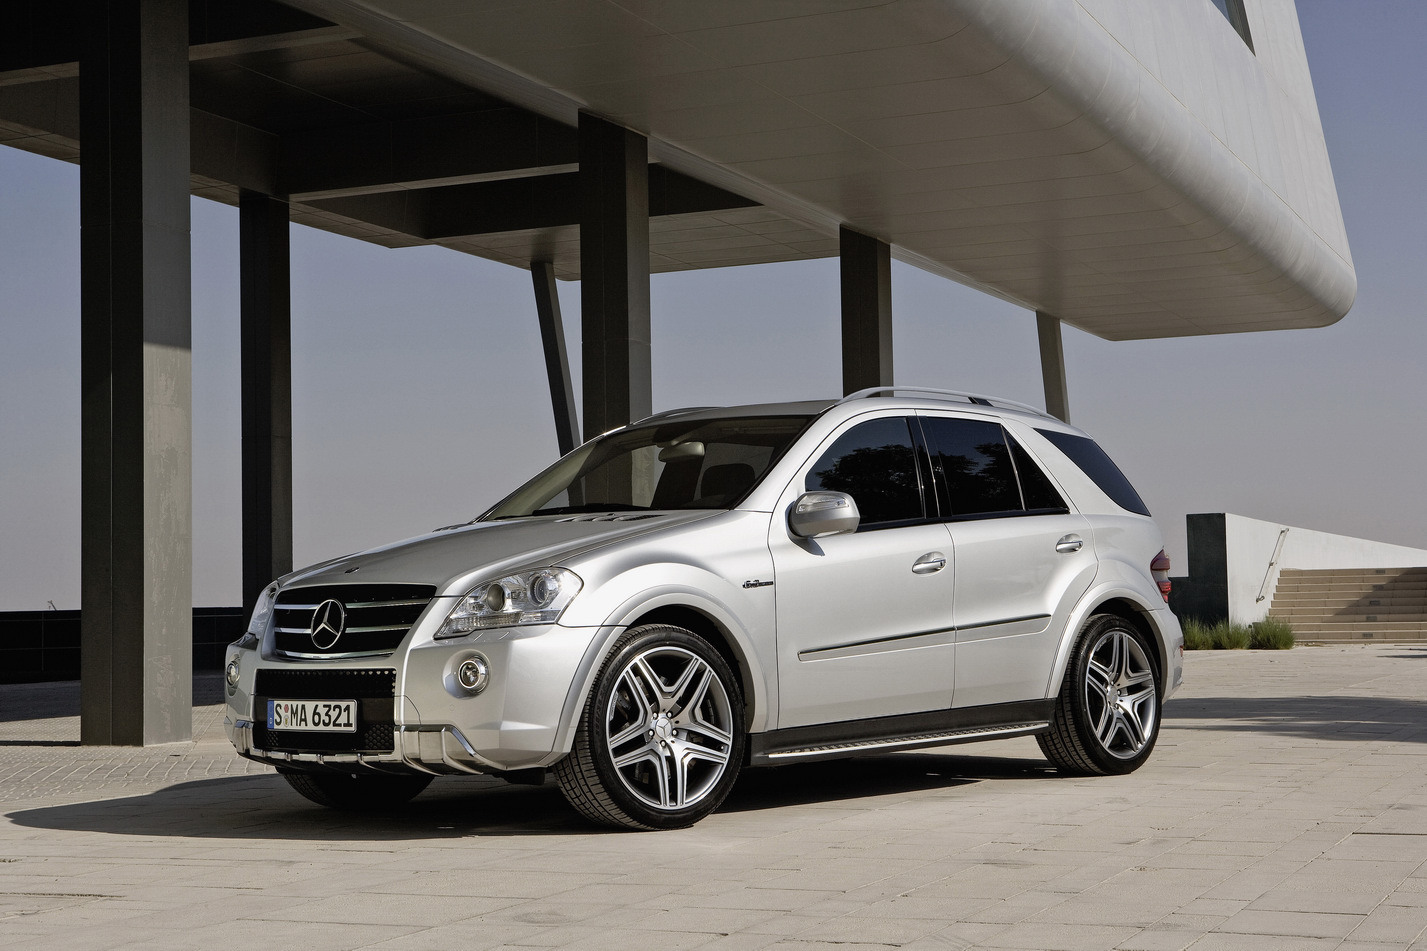 mercedes-benz ml 63 amg-pic. 1